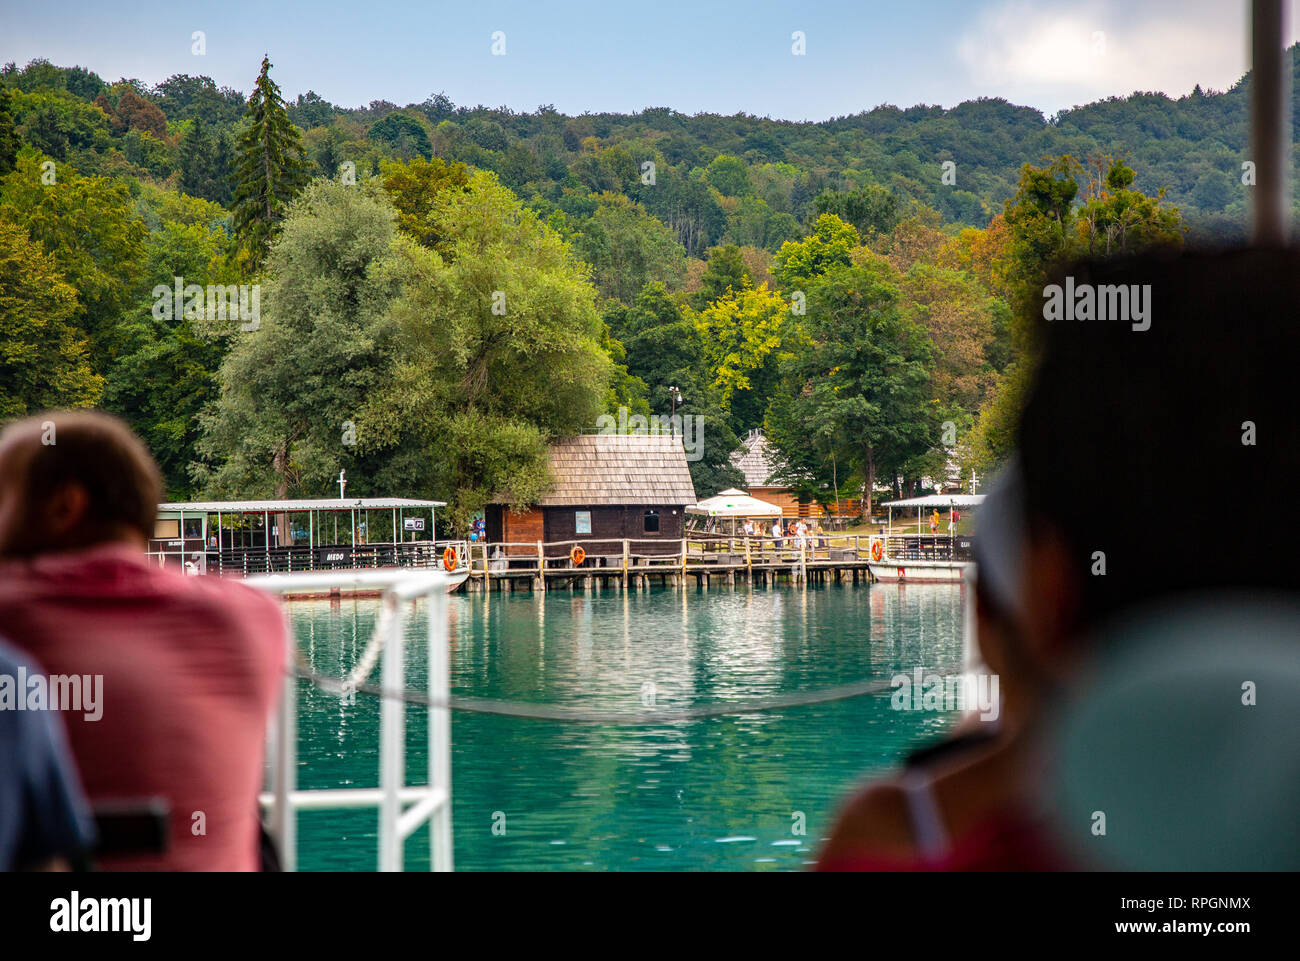 Cruising on the tourist boat at Plitvice Lakes national park in Croatia.   The boat is coming in to the landing near gate 2. - Stock Image